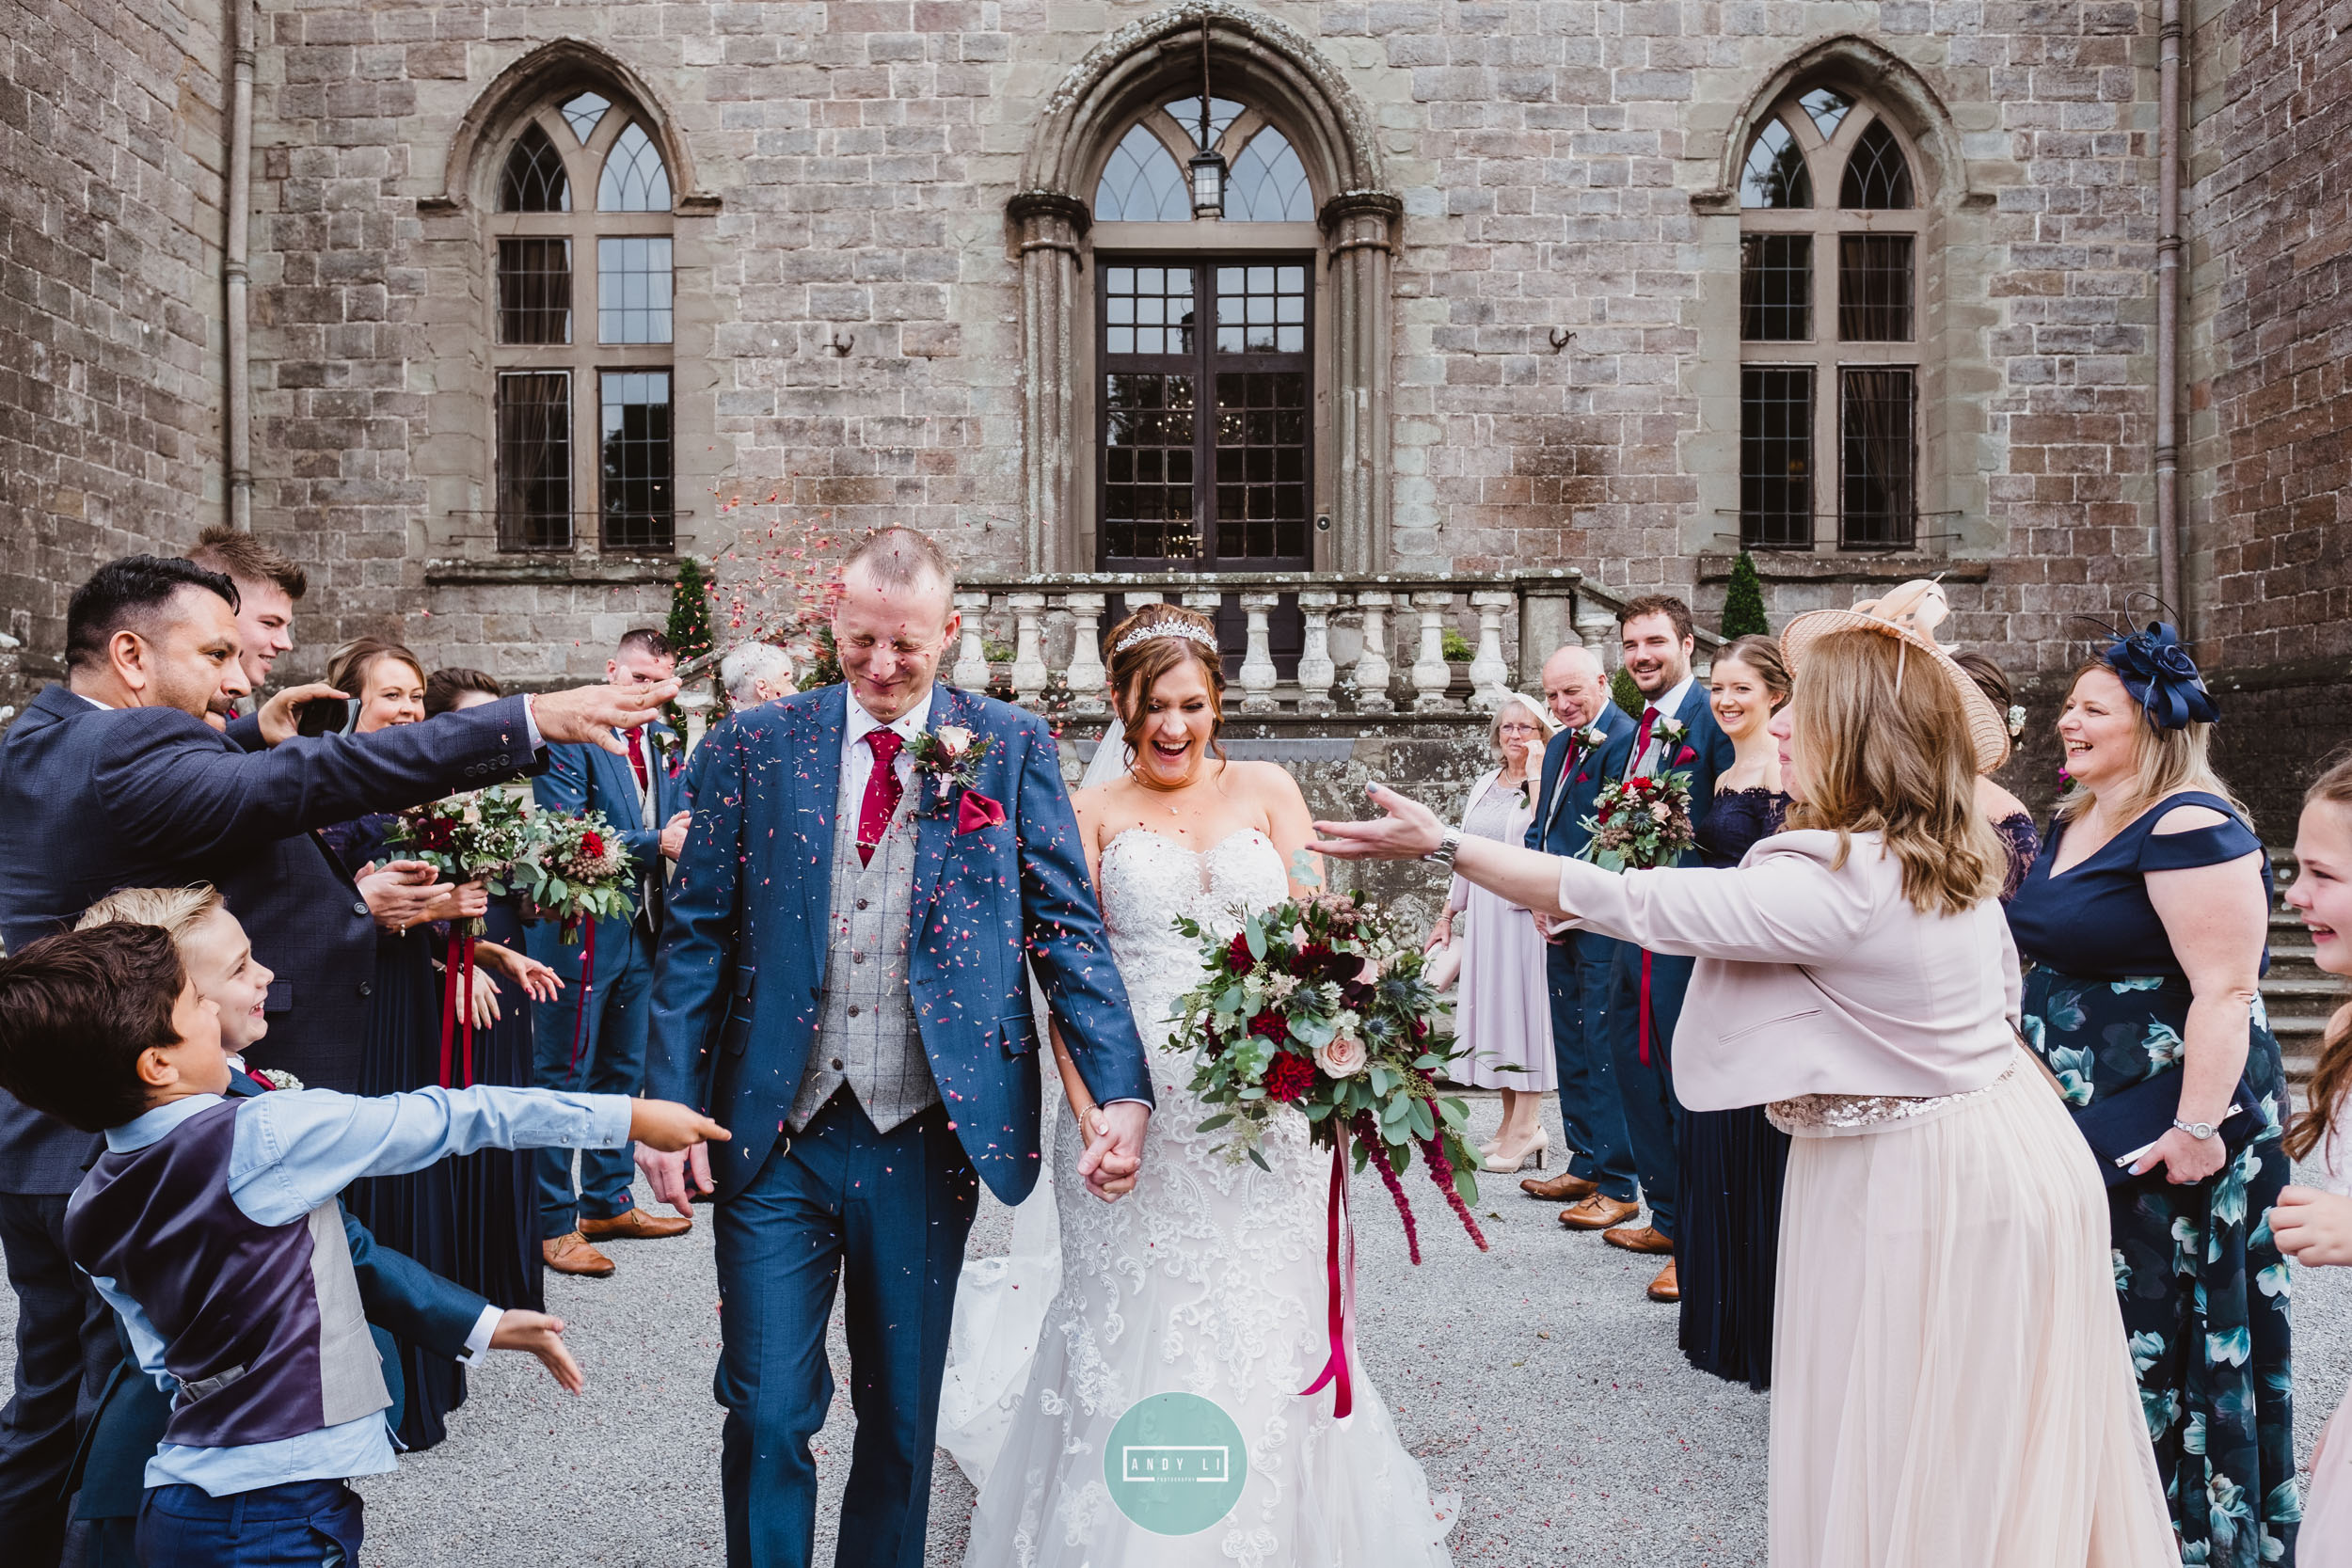 Clearwell Castle Wedding Photographer-074-XPRO3891.jpg